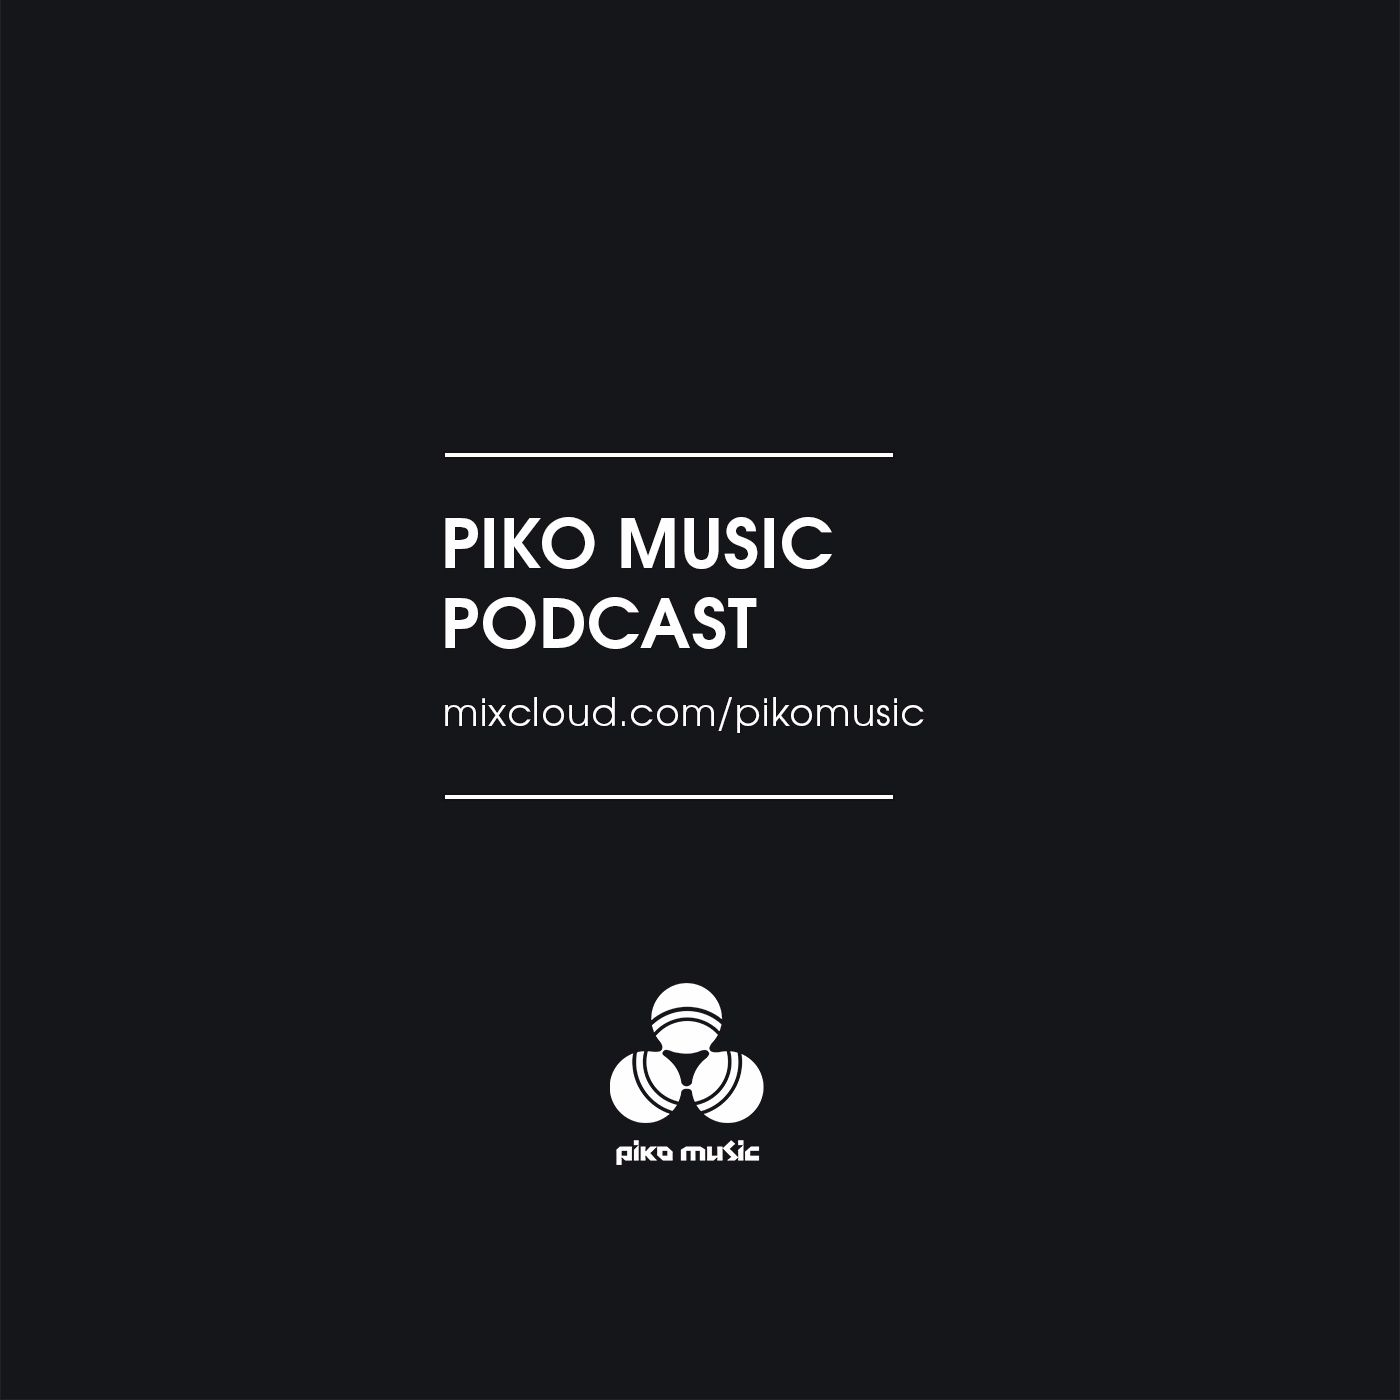 Piko Music Podcast